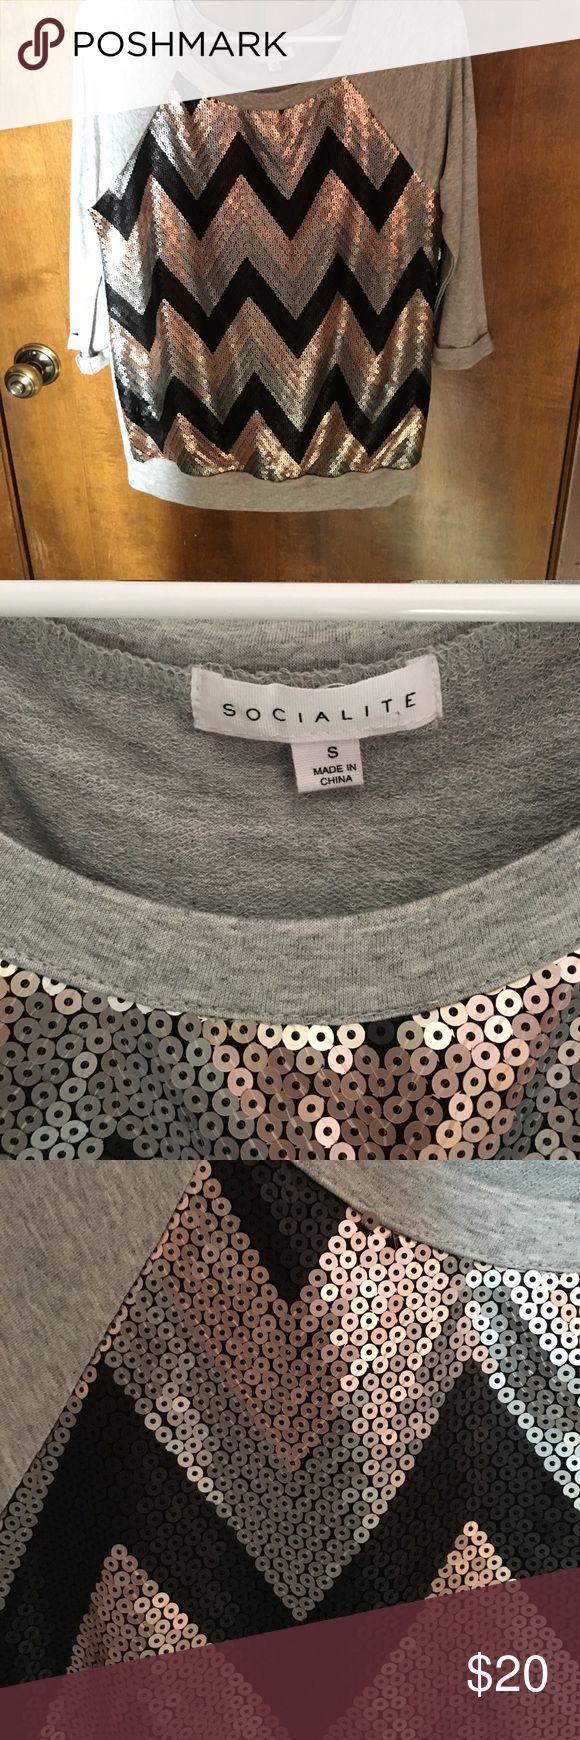 Socialite herringbone sequin top! Beautiful 3/4 length Herringbone sequin top. Sequins are black, silver and rose gold. Brand new condition! Only worn once for a feed hours. Purchased from Nordstrom rack. Non sequin part of shirt is basic grey tee shirt material. Socialite Tops